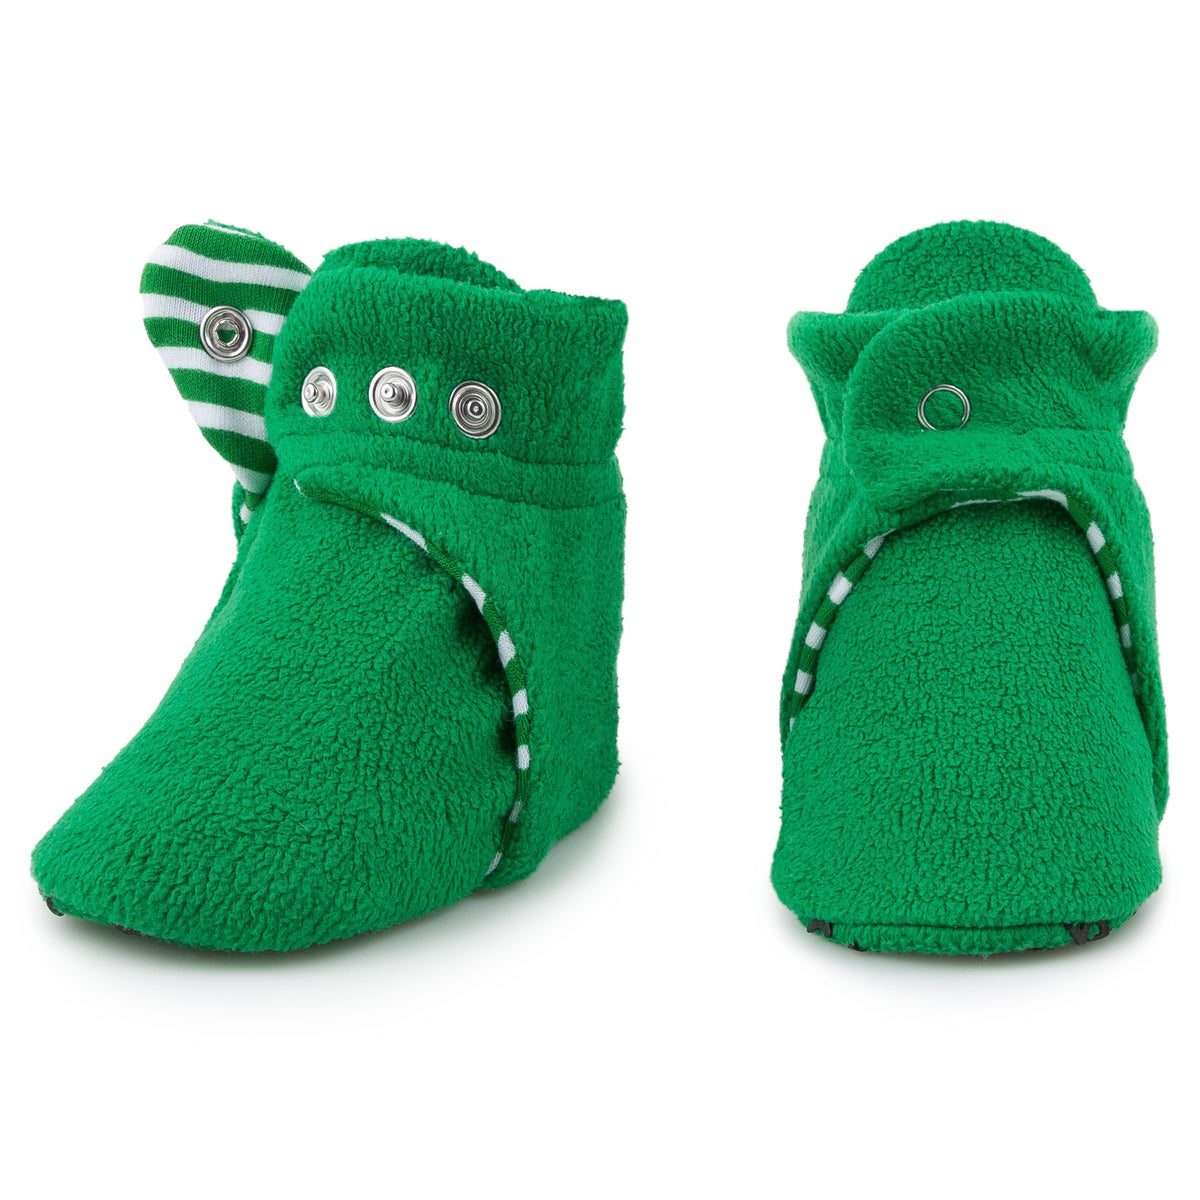 Pair of Wintergreen Baby Booties